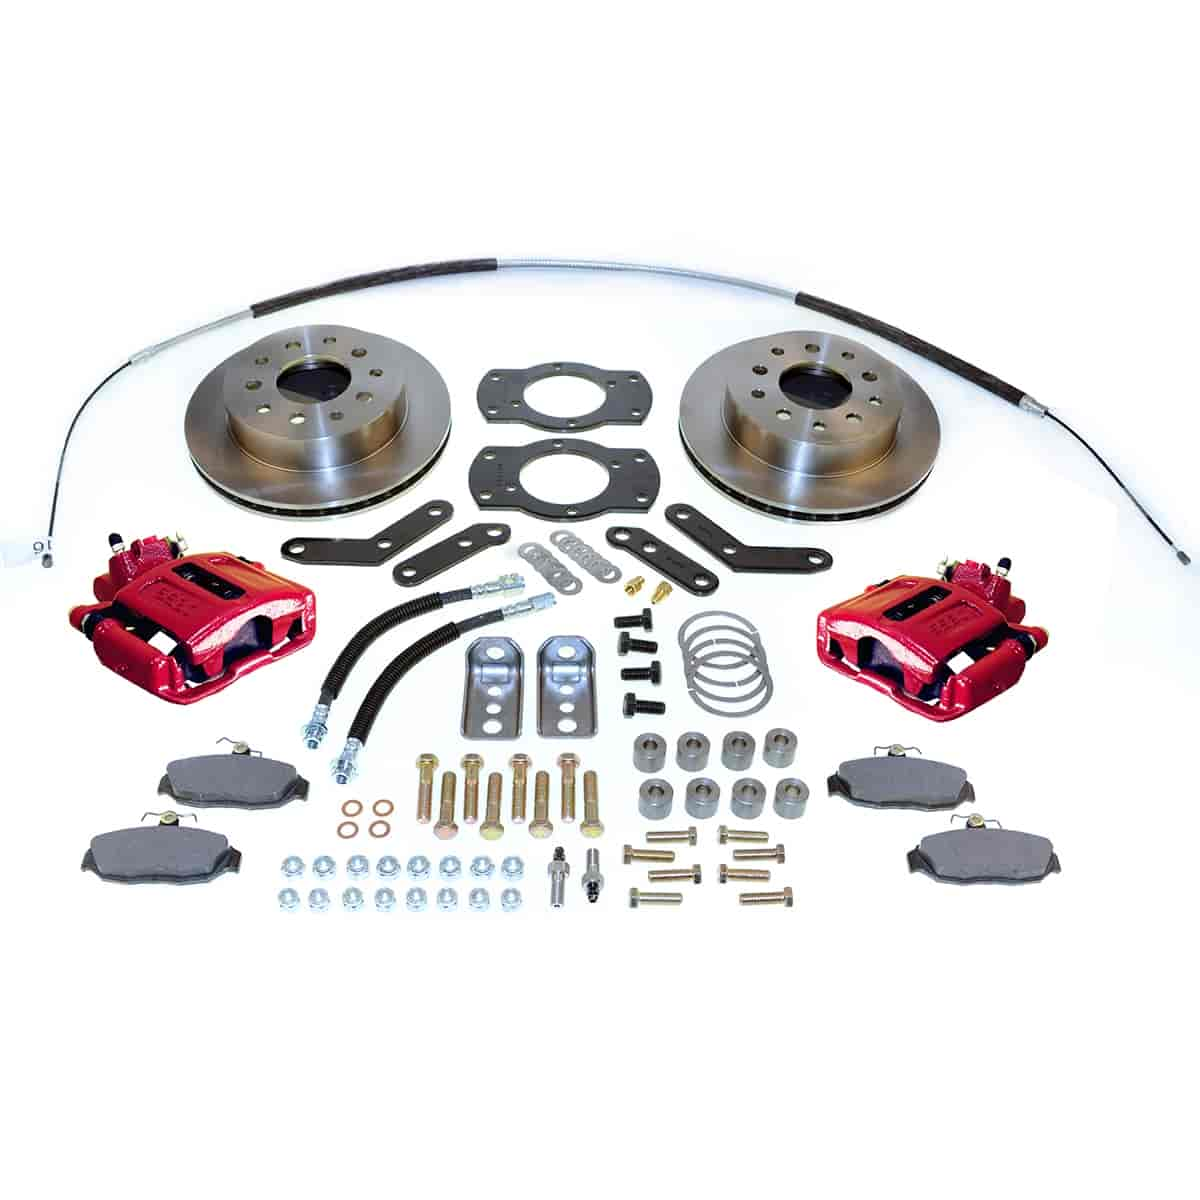 Stainless Steel Brakes A125-1R - Stainless Steel Brakes Single Piston Rear Disc Brake Conversion Kit